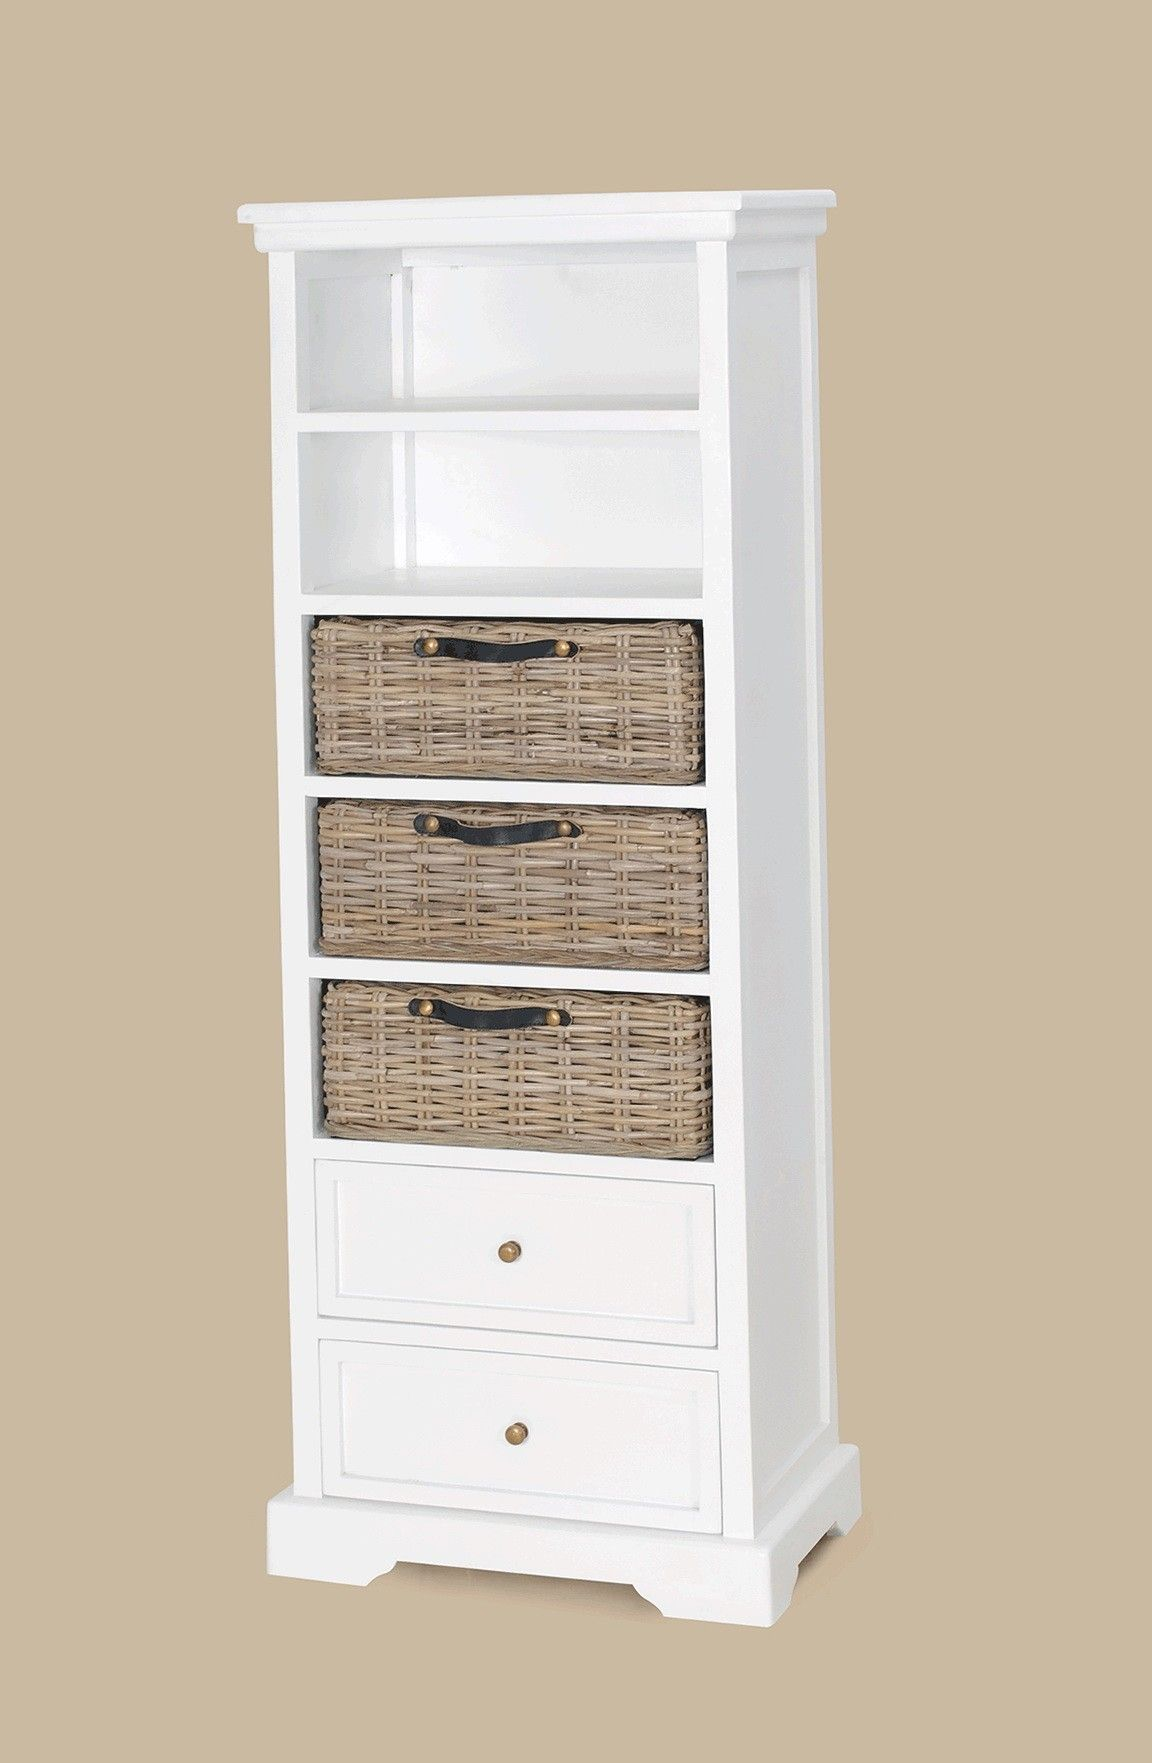 Furniture Tall White Wooden Bookcase With Double Racks And Three Brown Rattan Storages Also Double D Bookcase